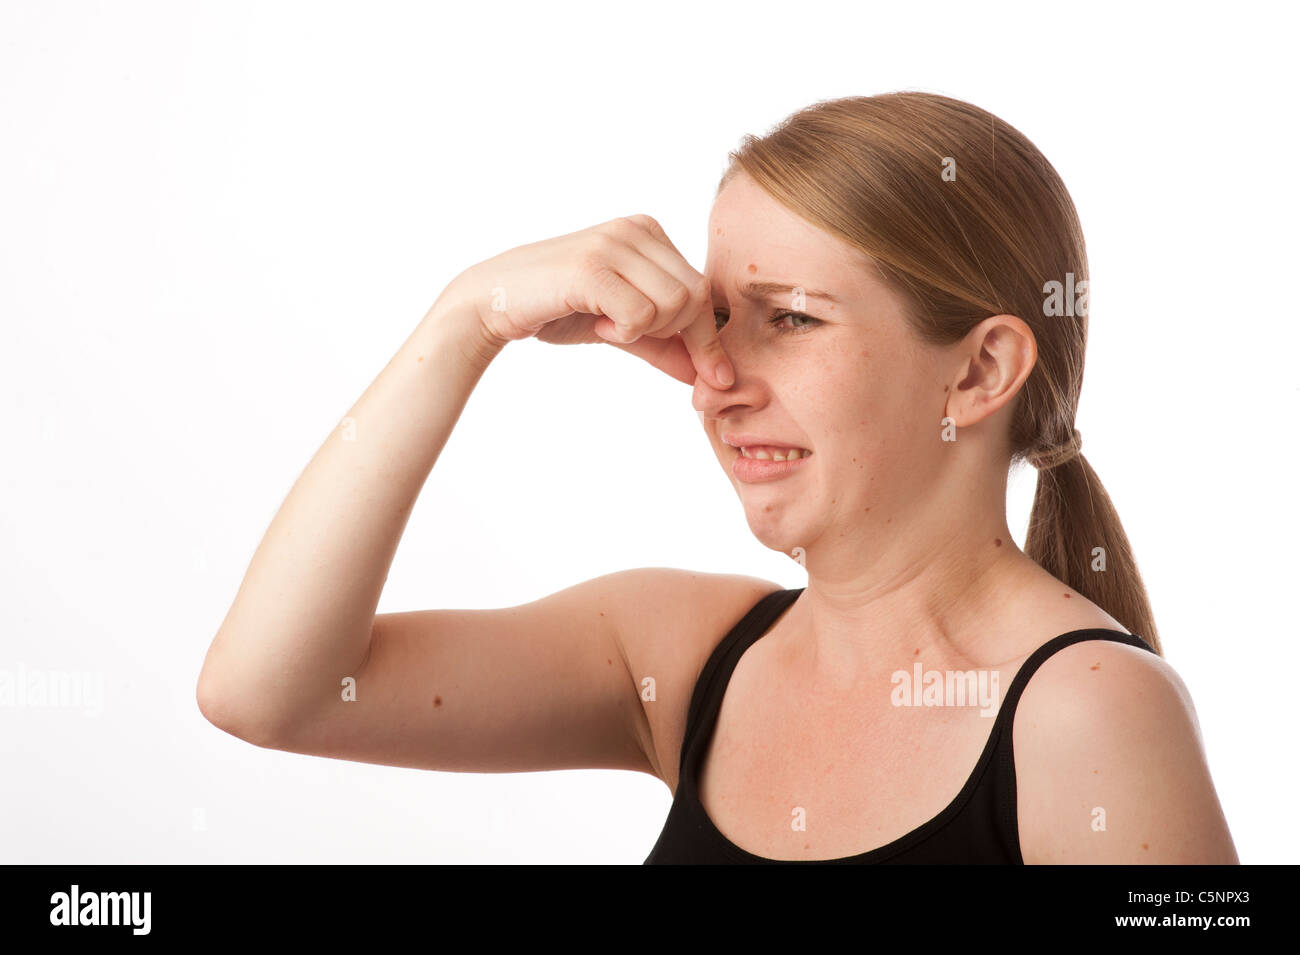 a young caucasian woman holding her nose to alleviate a nasty smelly smell - Stock Image